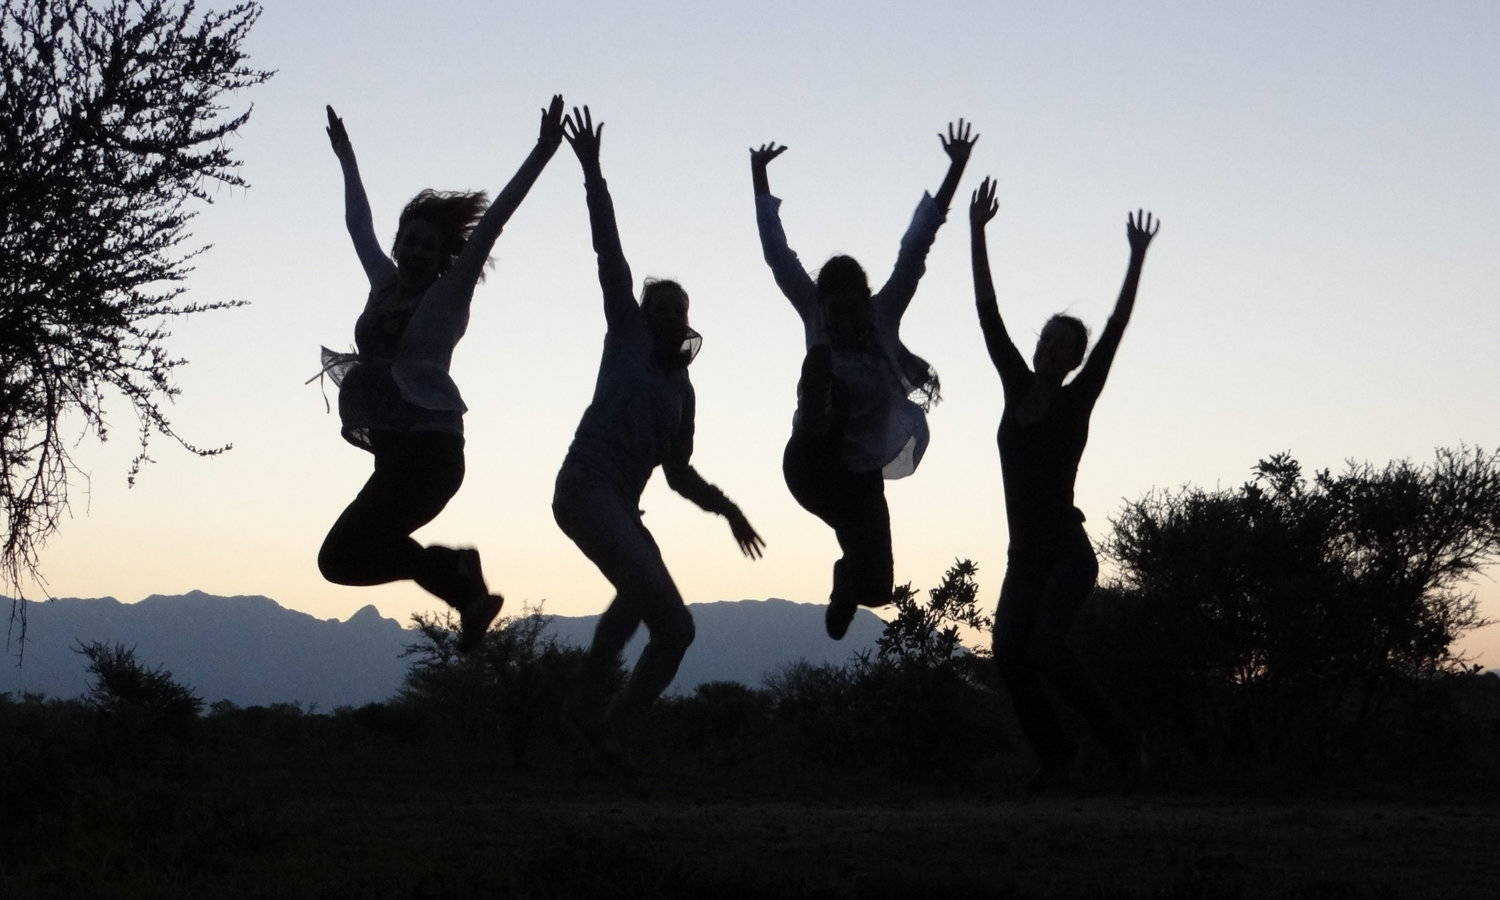 4 Girls jumping up high, Learn German and English Online